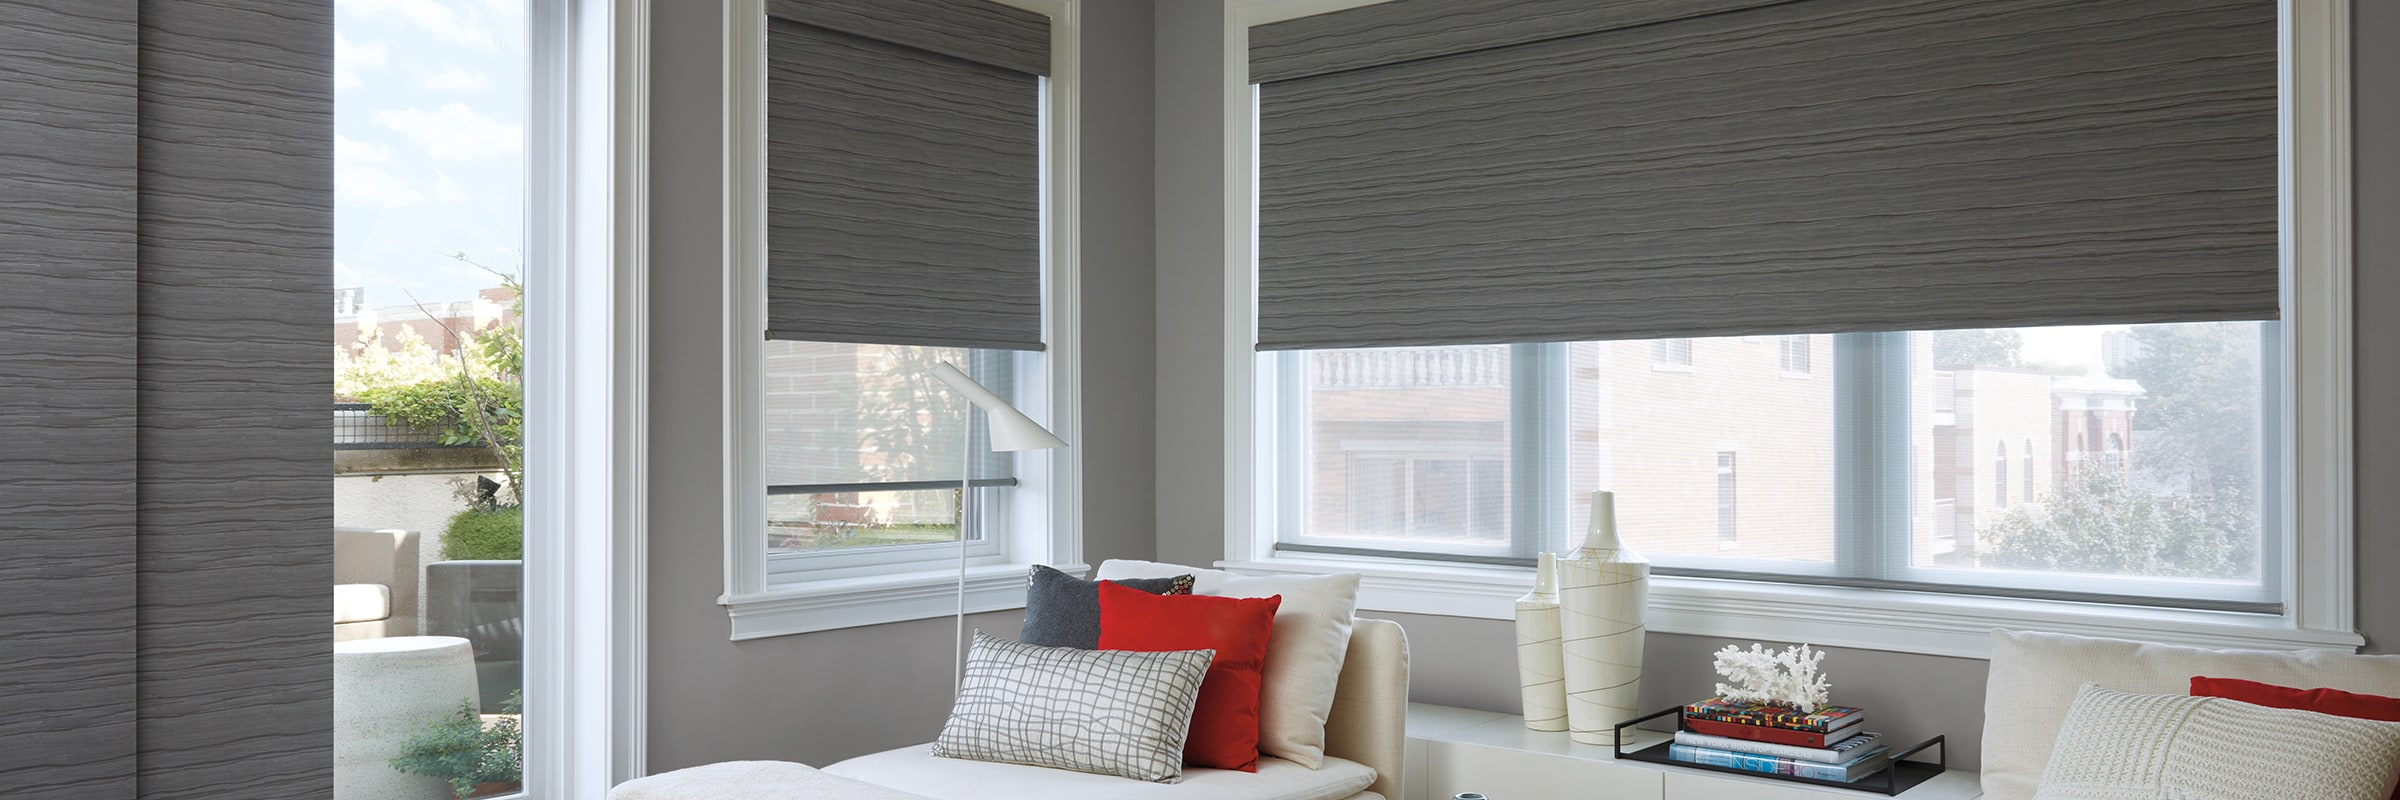 from roller by pin manufactured blind fabric bq design stiffened and blinds spindle ink